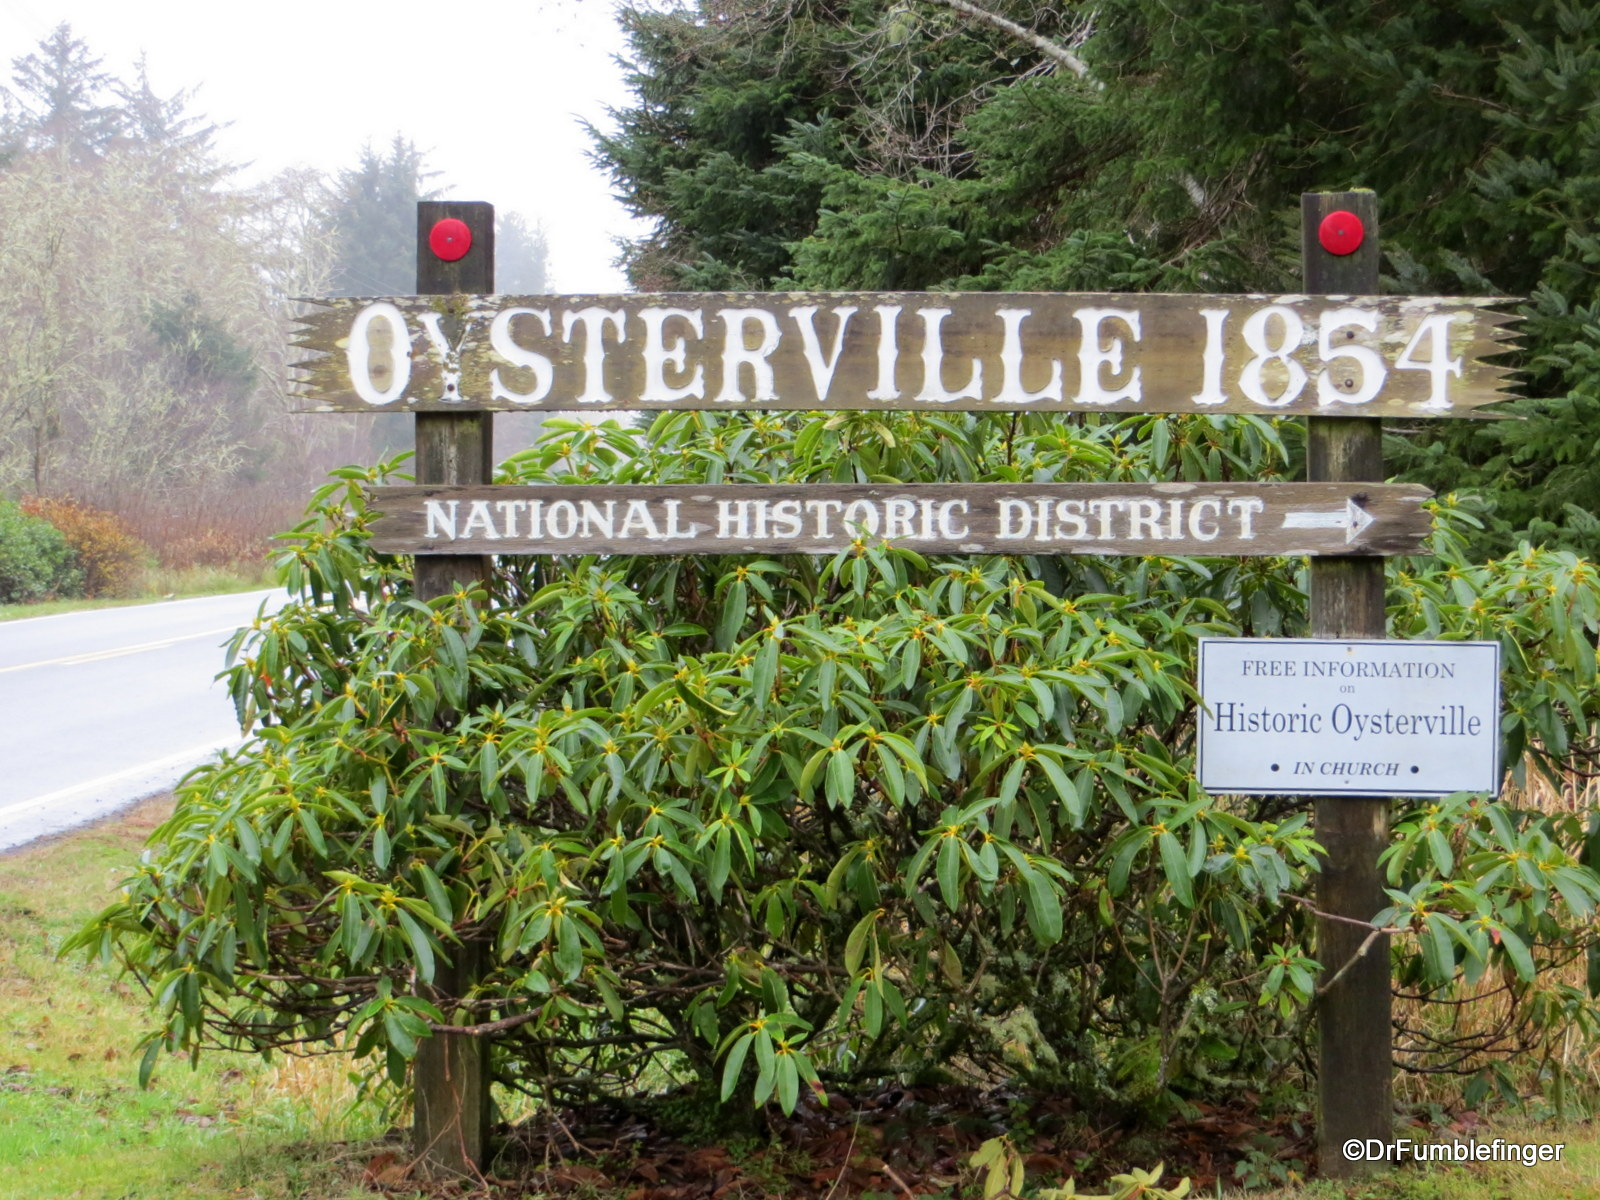 Oysterville